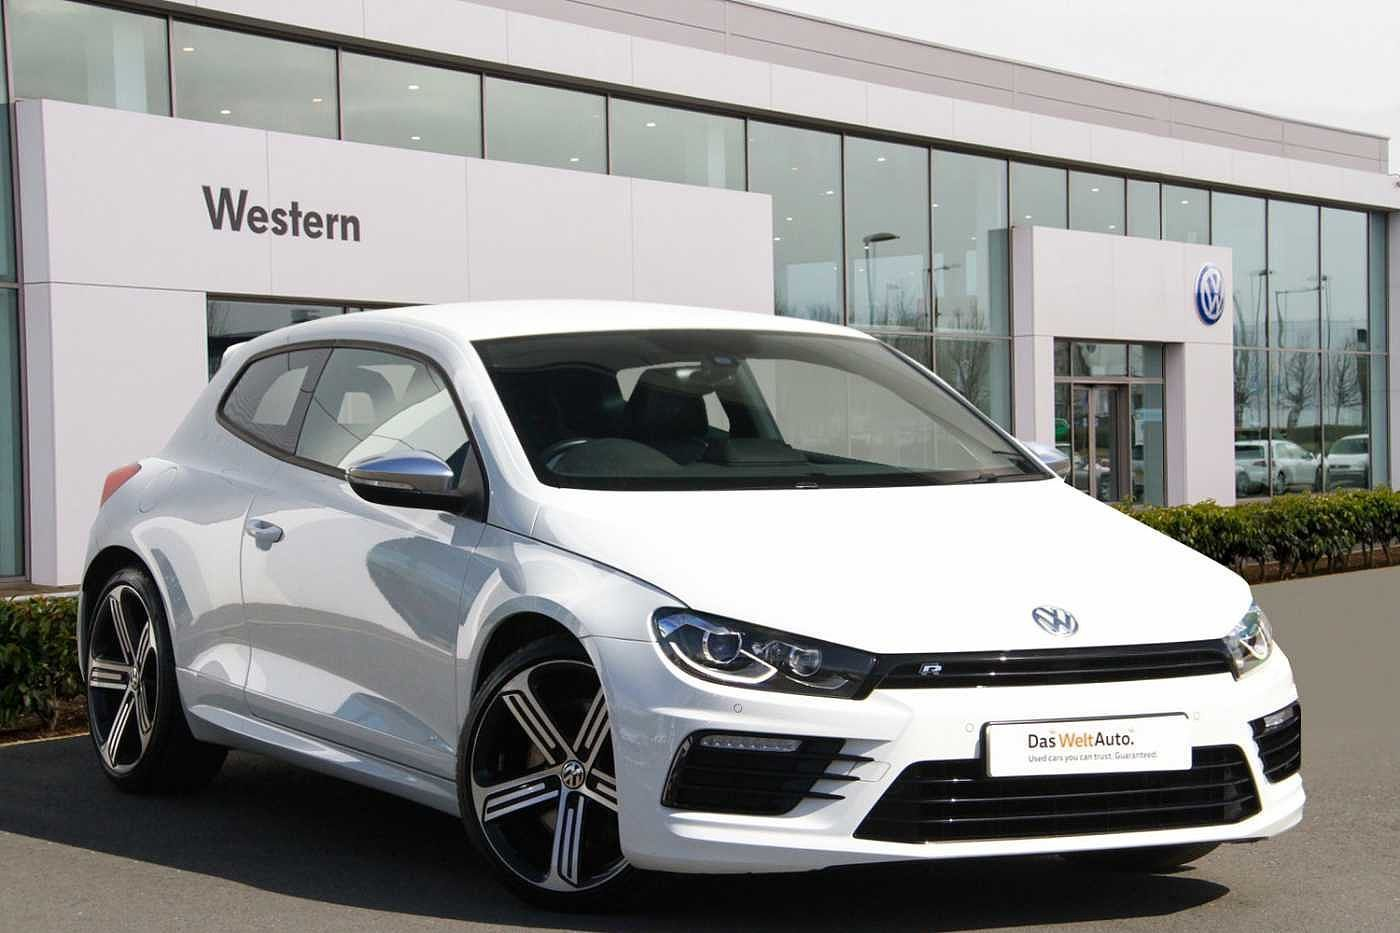 Volkswagen Scirocco for sale